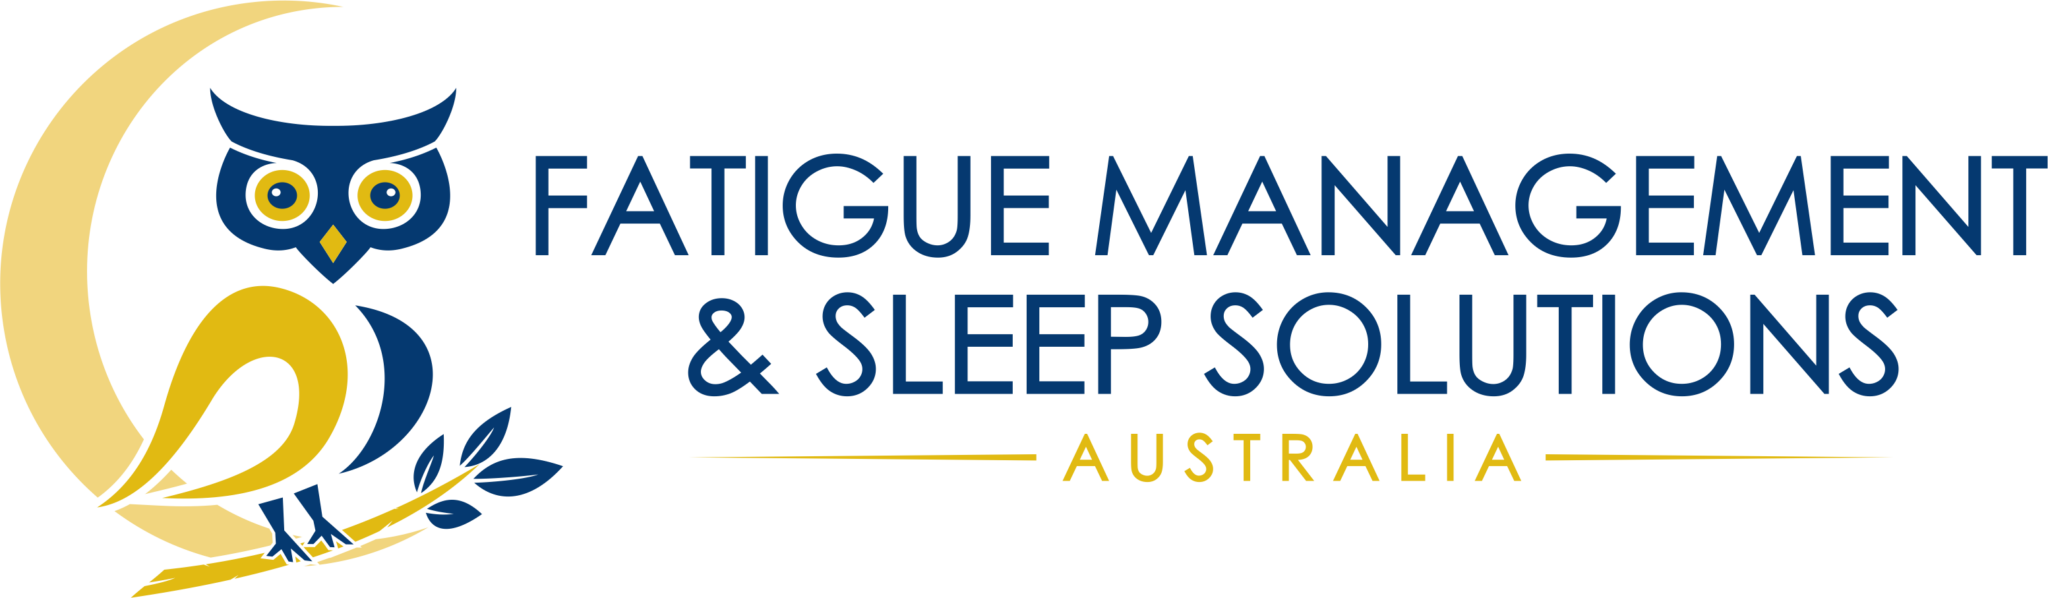 Fatigue Management & Sleep Solutions Australia